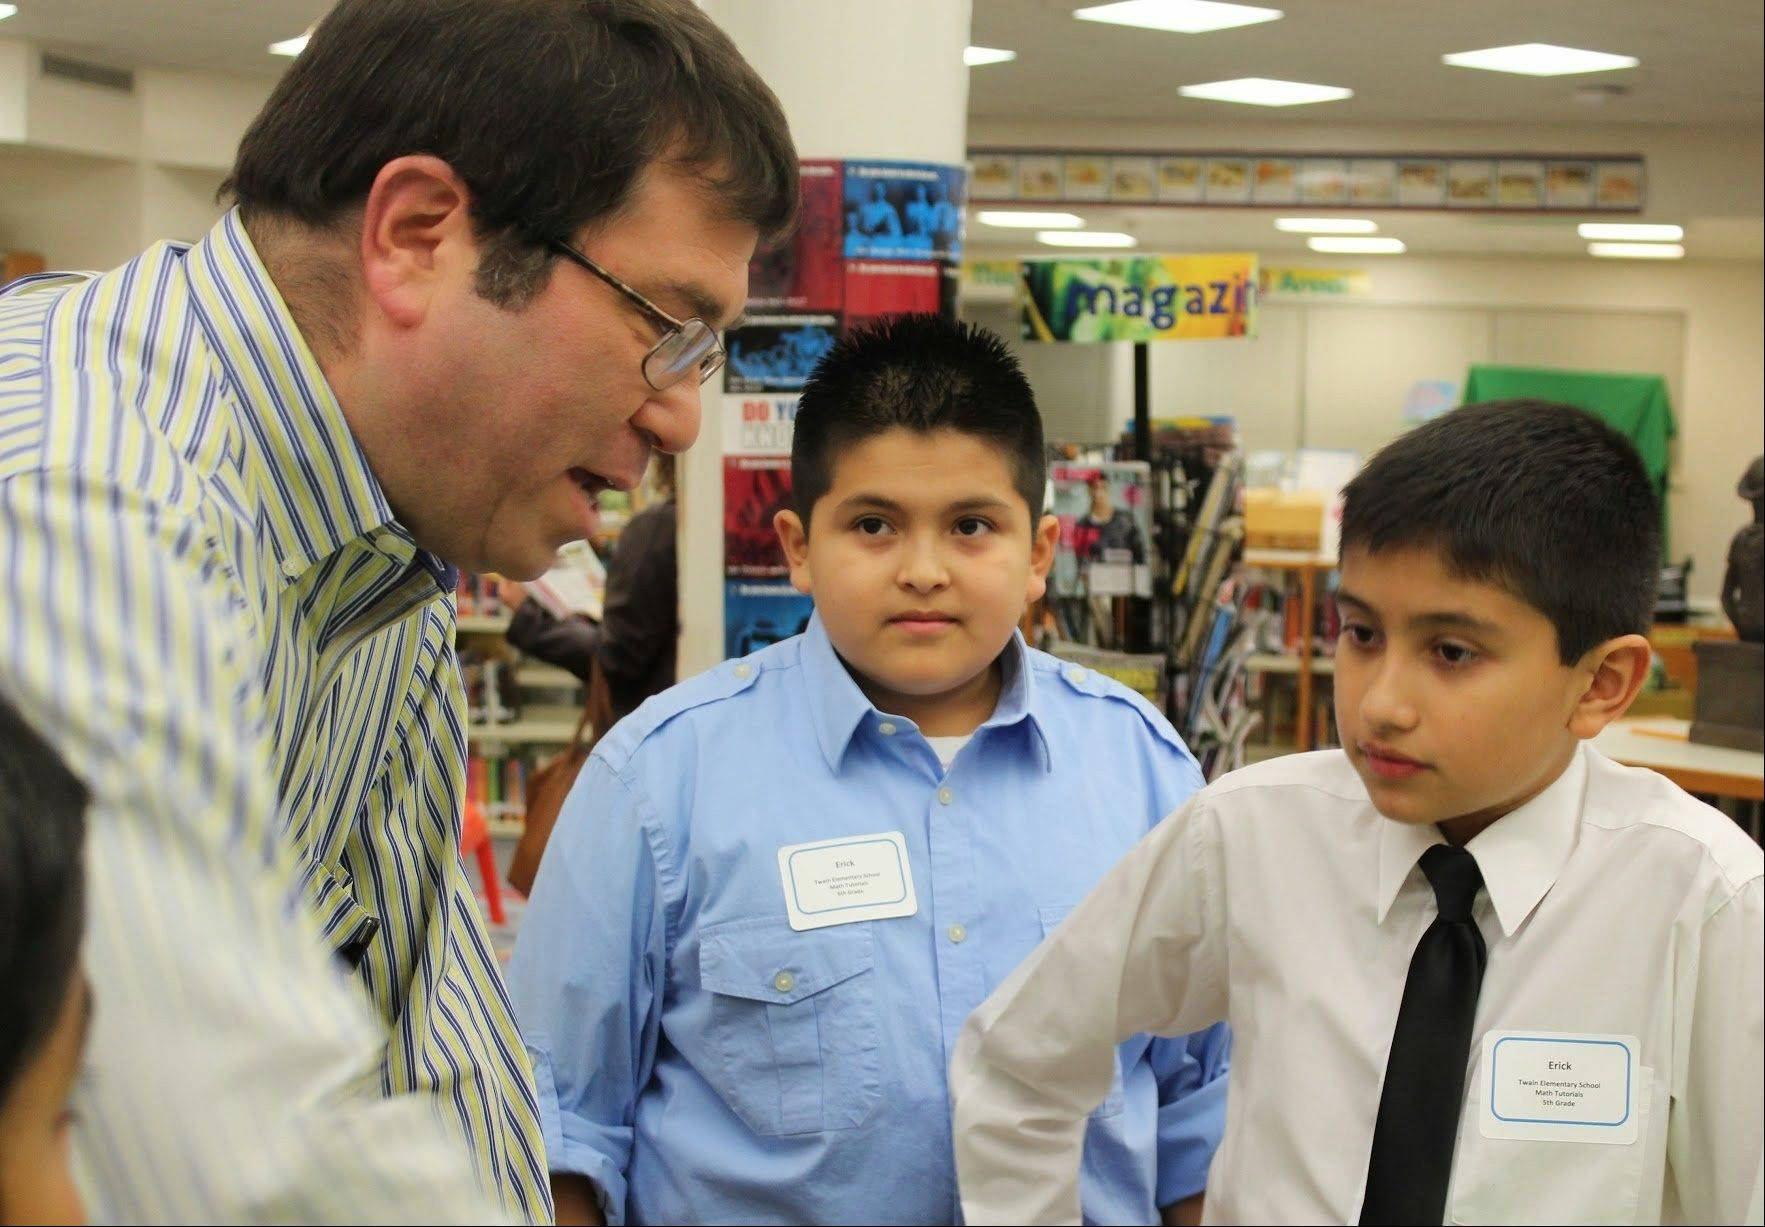 Fifth-graders Erick Garduno, center, and Erick Miranda, right, field a question from District 21 board President Bill Harrison. Garduno and Miranda, students at Twain School in Wheeling, presented their math tutorial videos, which they created to help peers learn multi-digit operations.